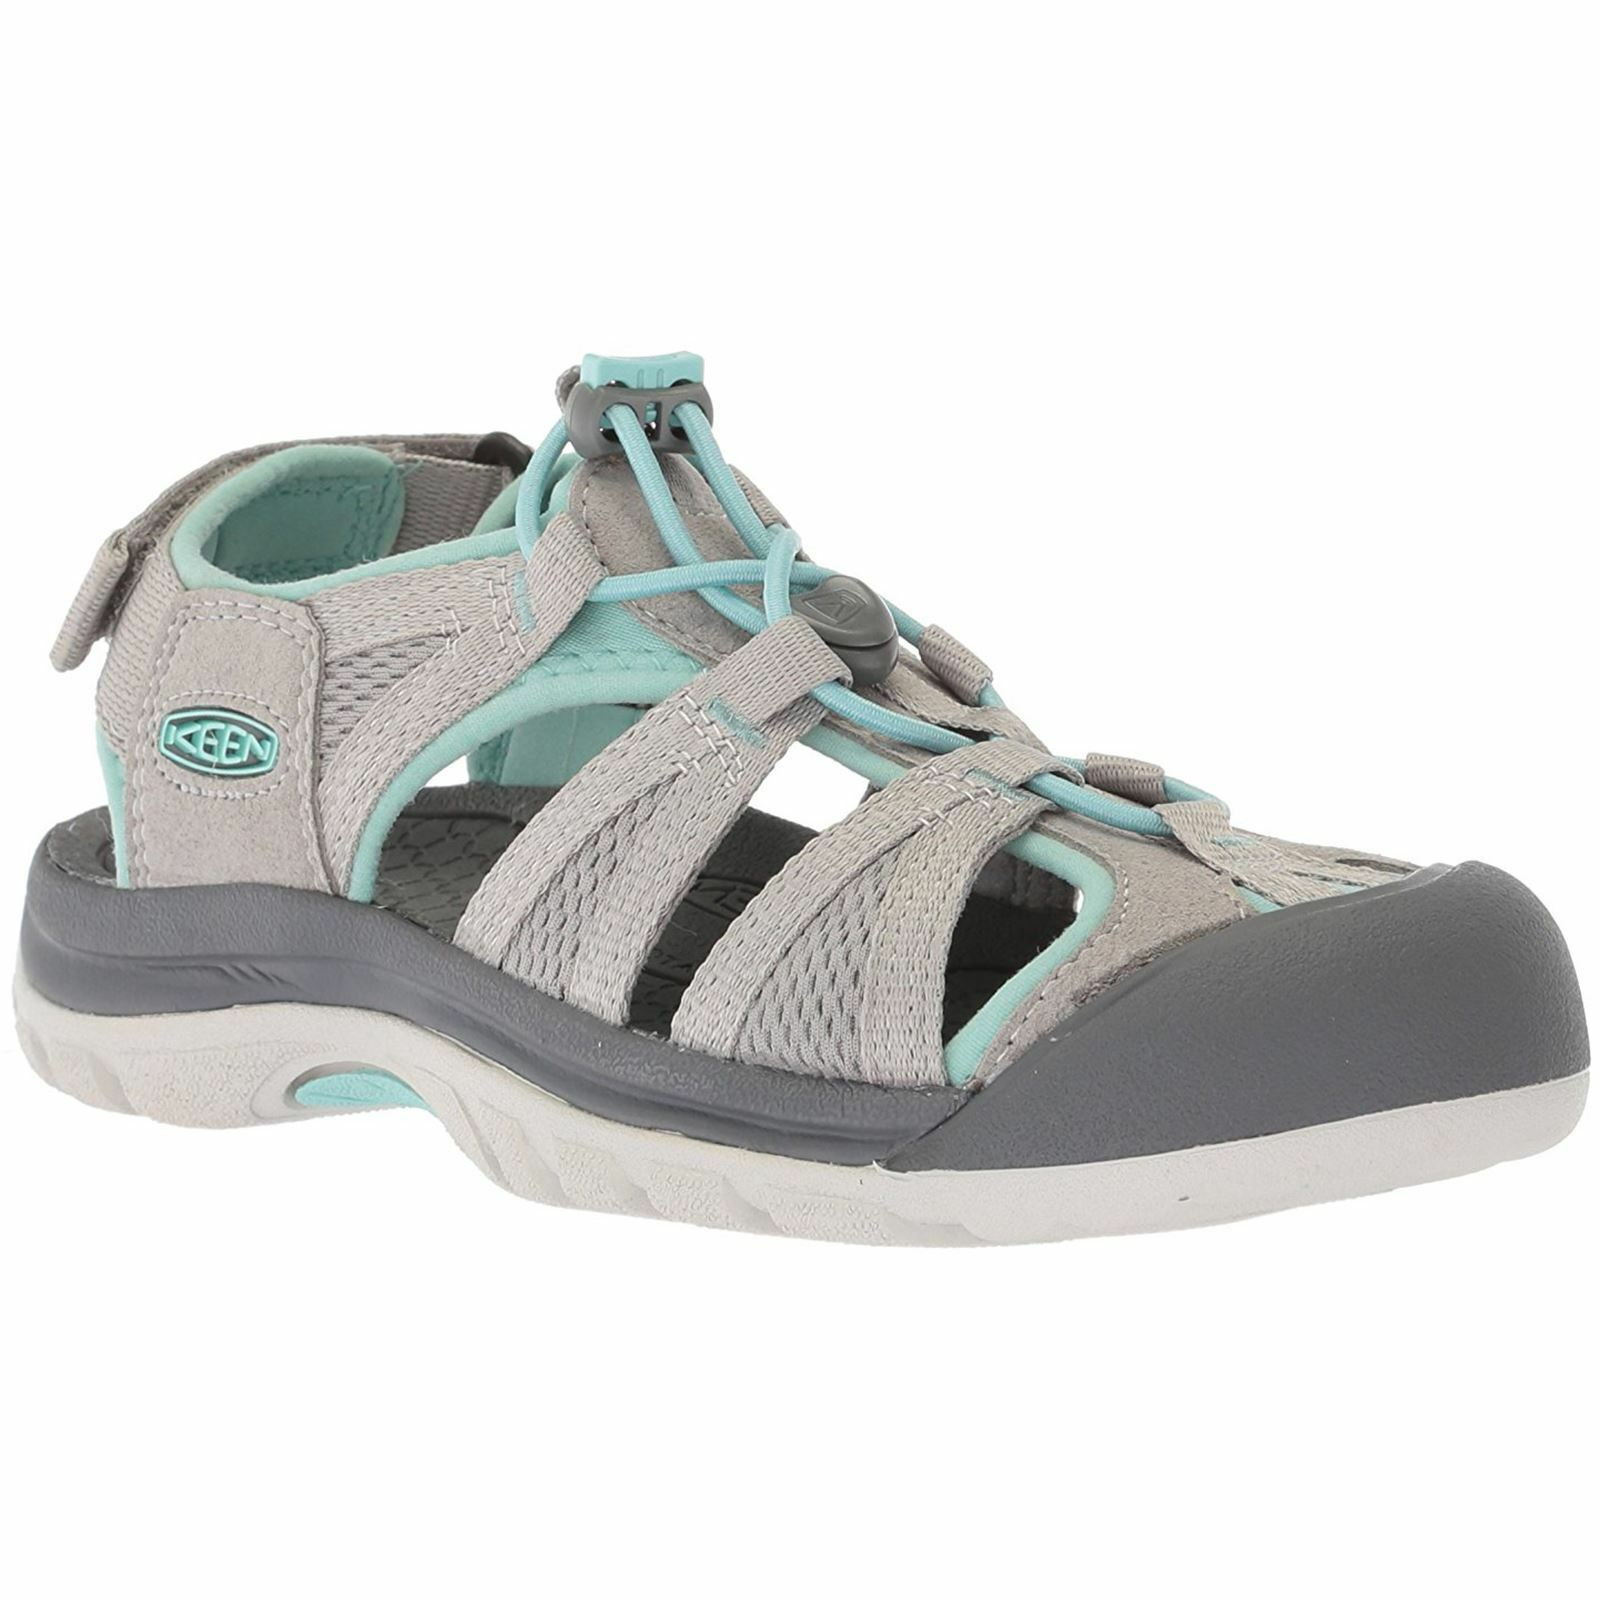 Keen Venice II H2 Paloma Pastel Turquoise Womens Slip-On Hiking Sandals